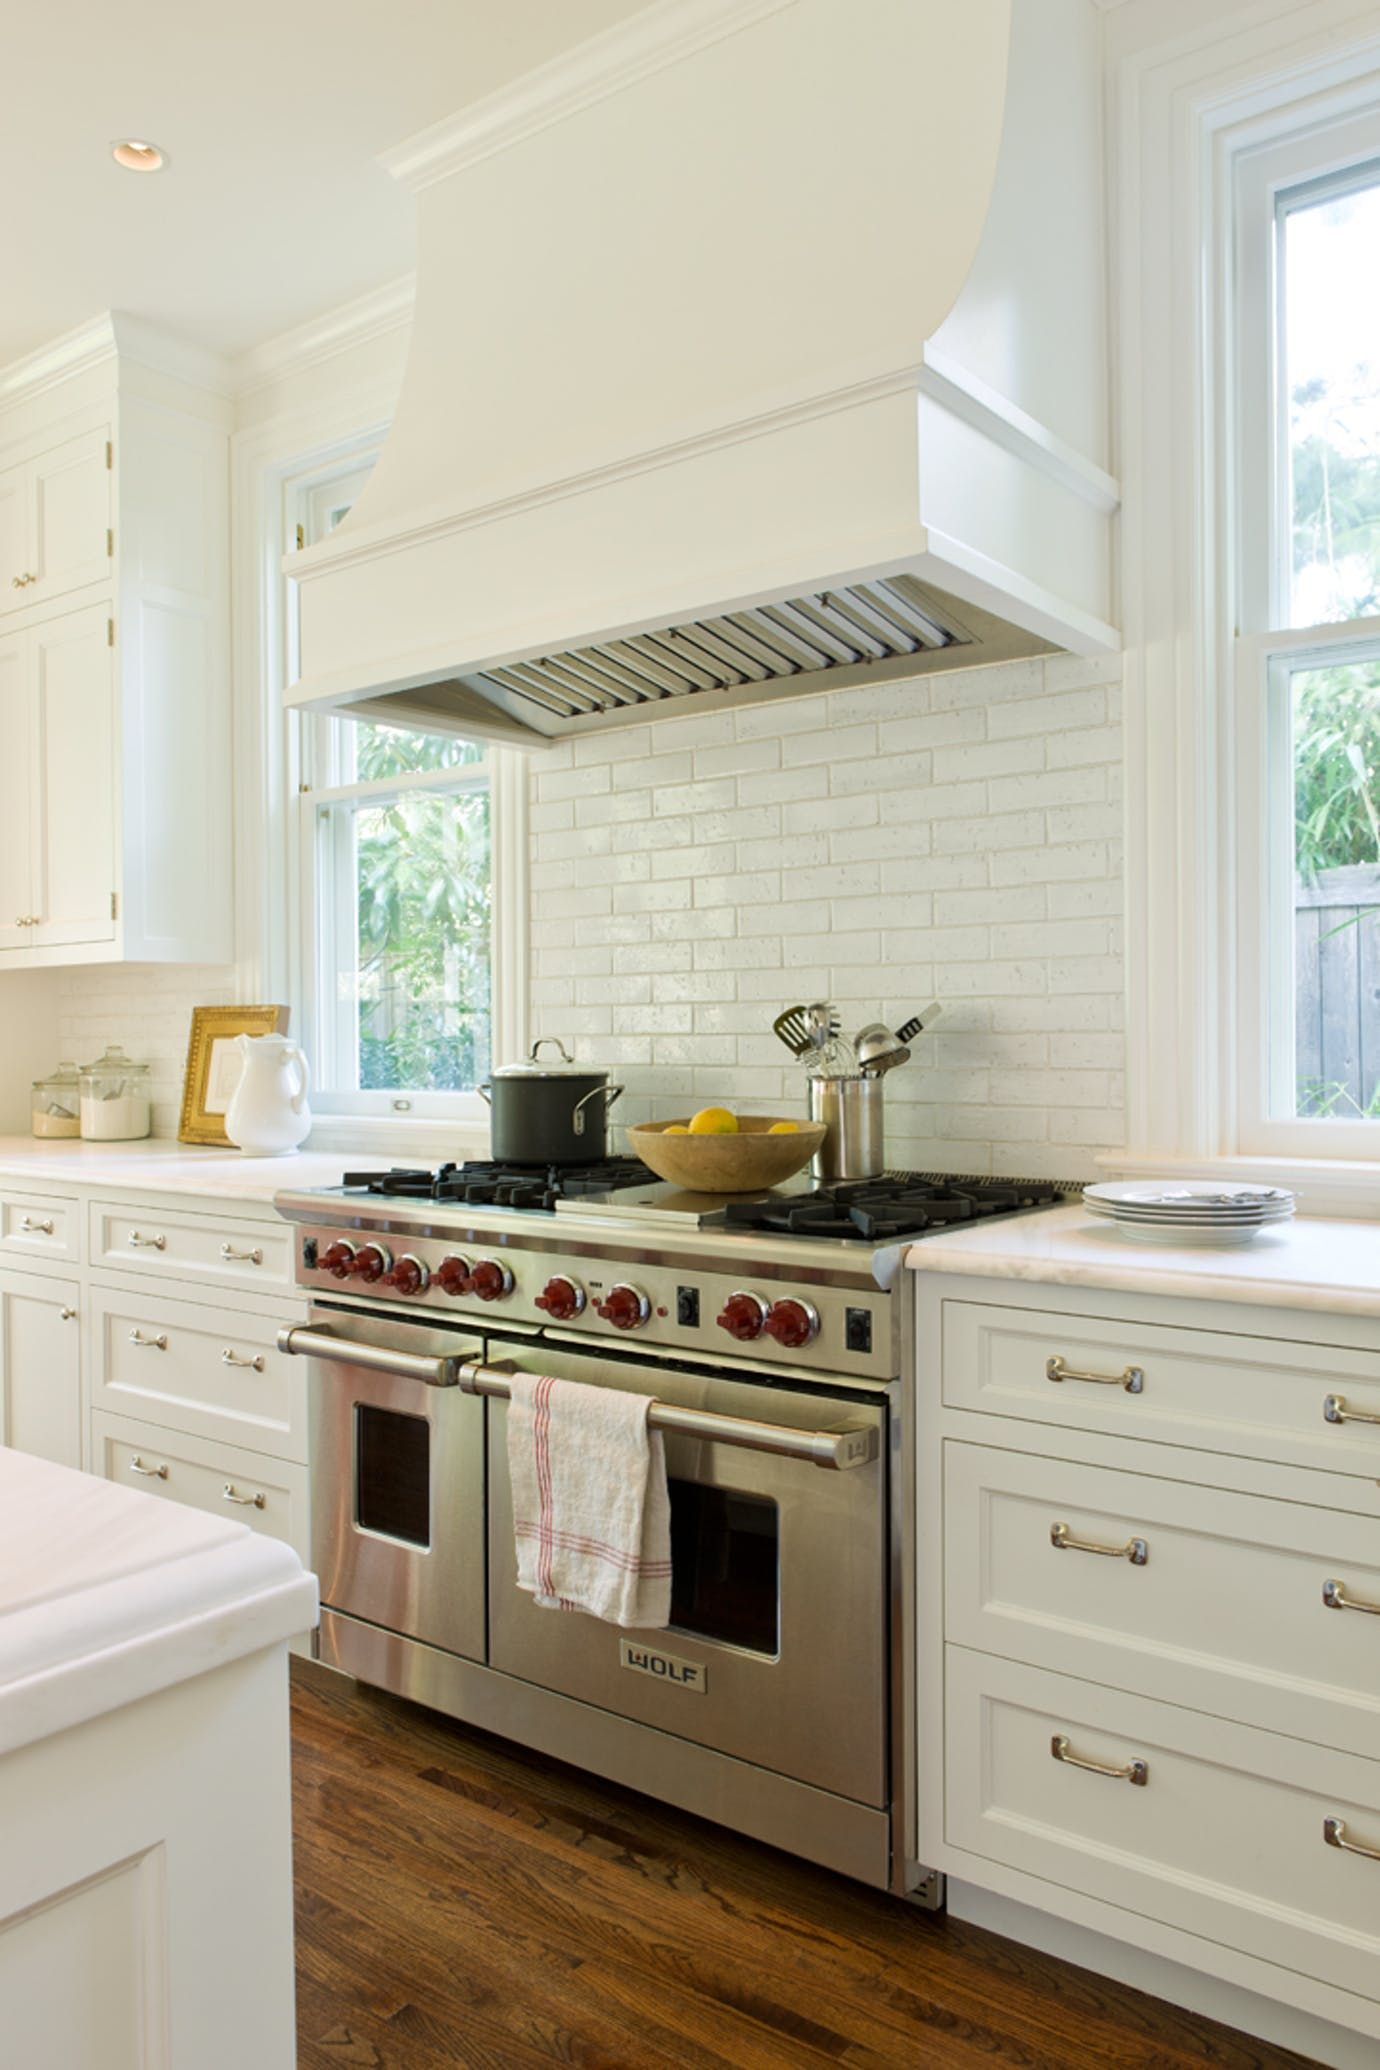 Kitchen Detail Kitchen Neoclassical TraditionalNeoclassical Eclectic By  Anne Decker Architects